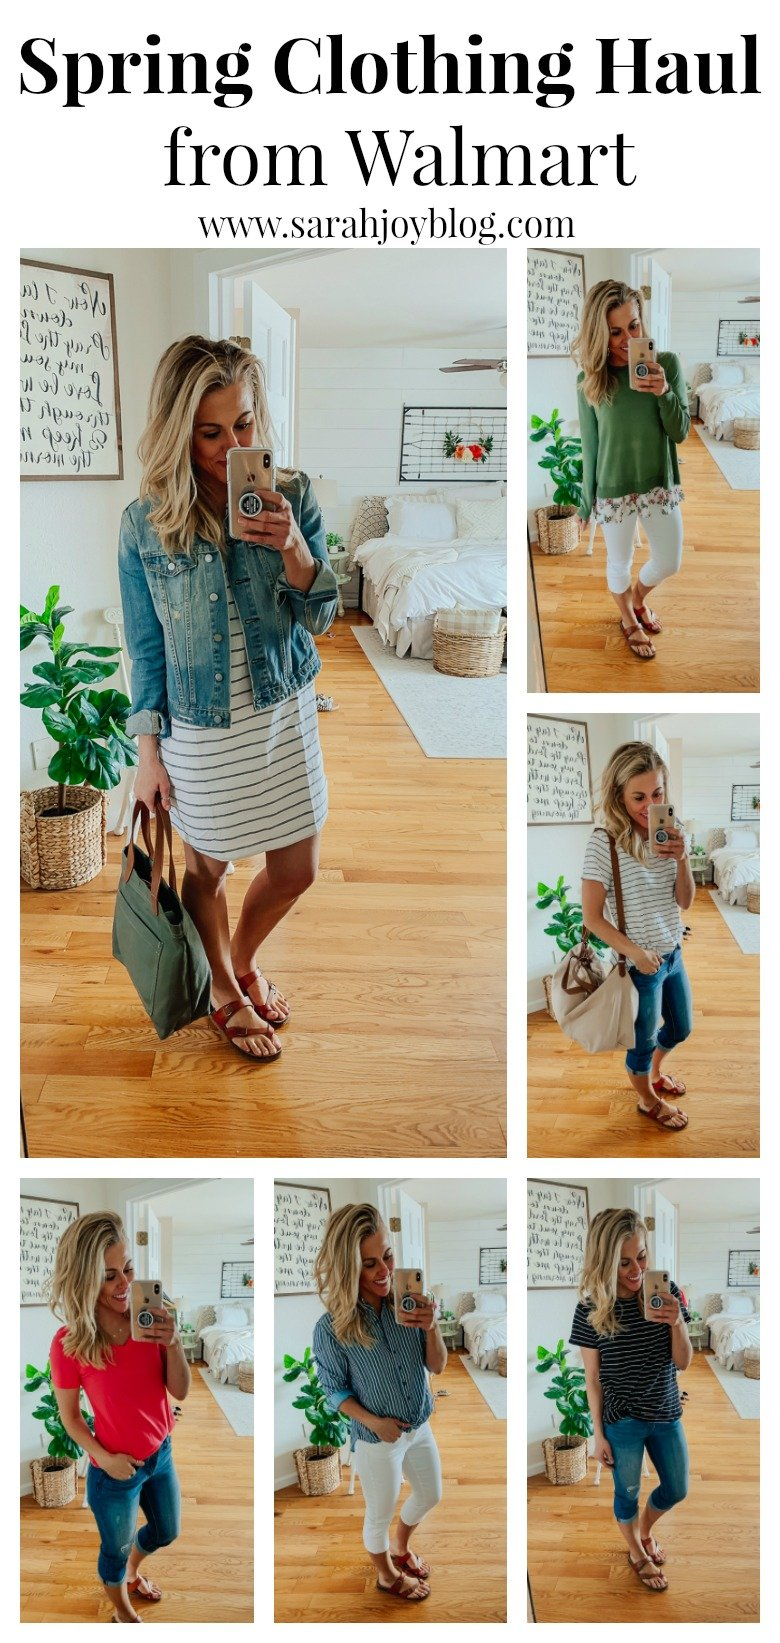 49b28e09669 Spring clothing haul from Walmart. Affordable spring outfit ideas for  spring and summer.